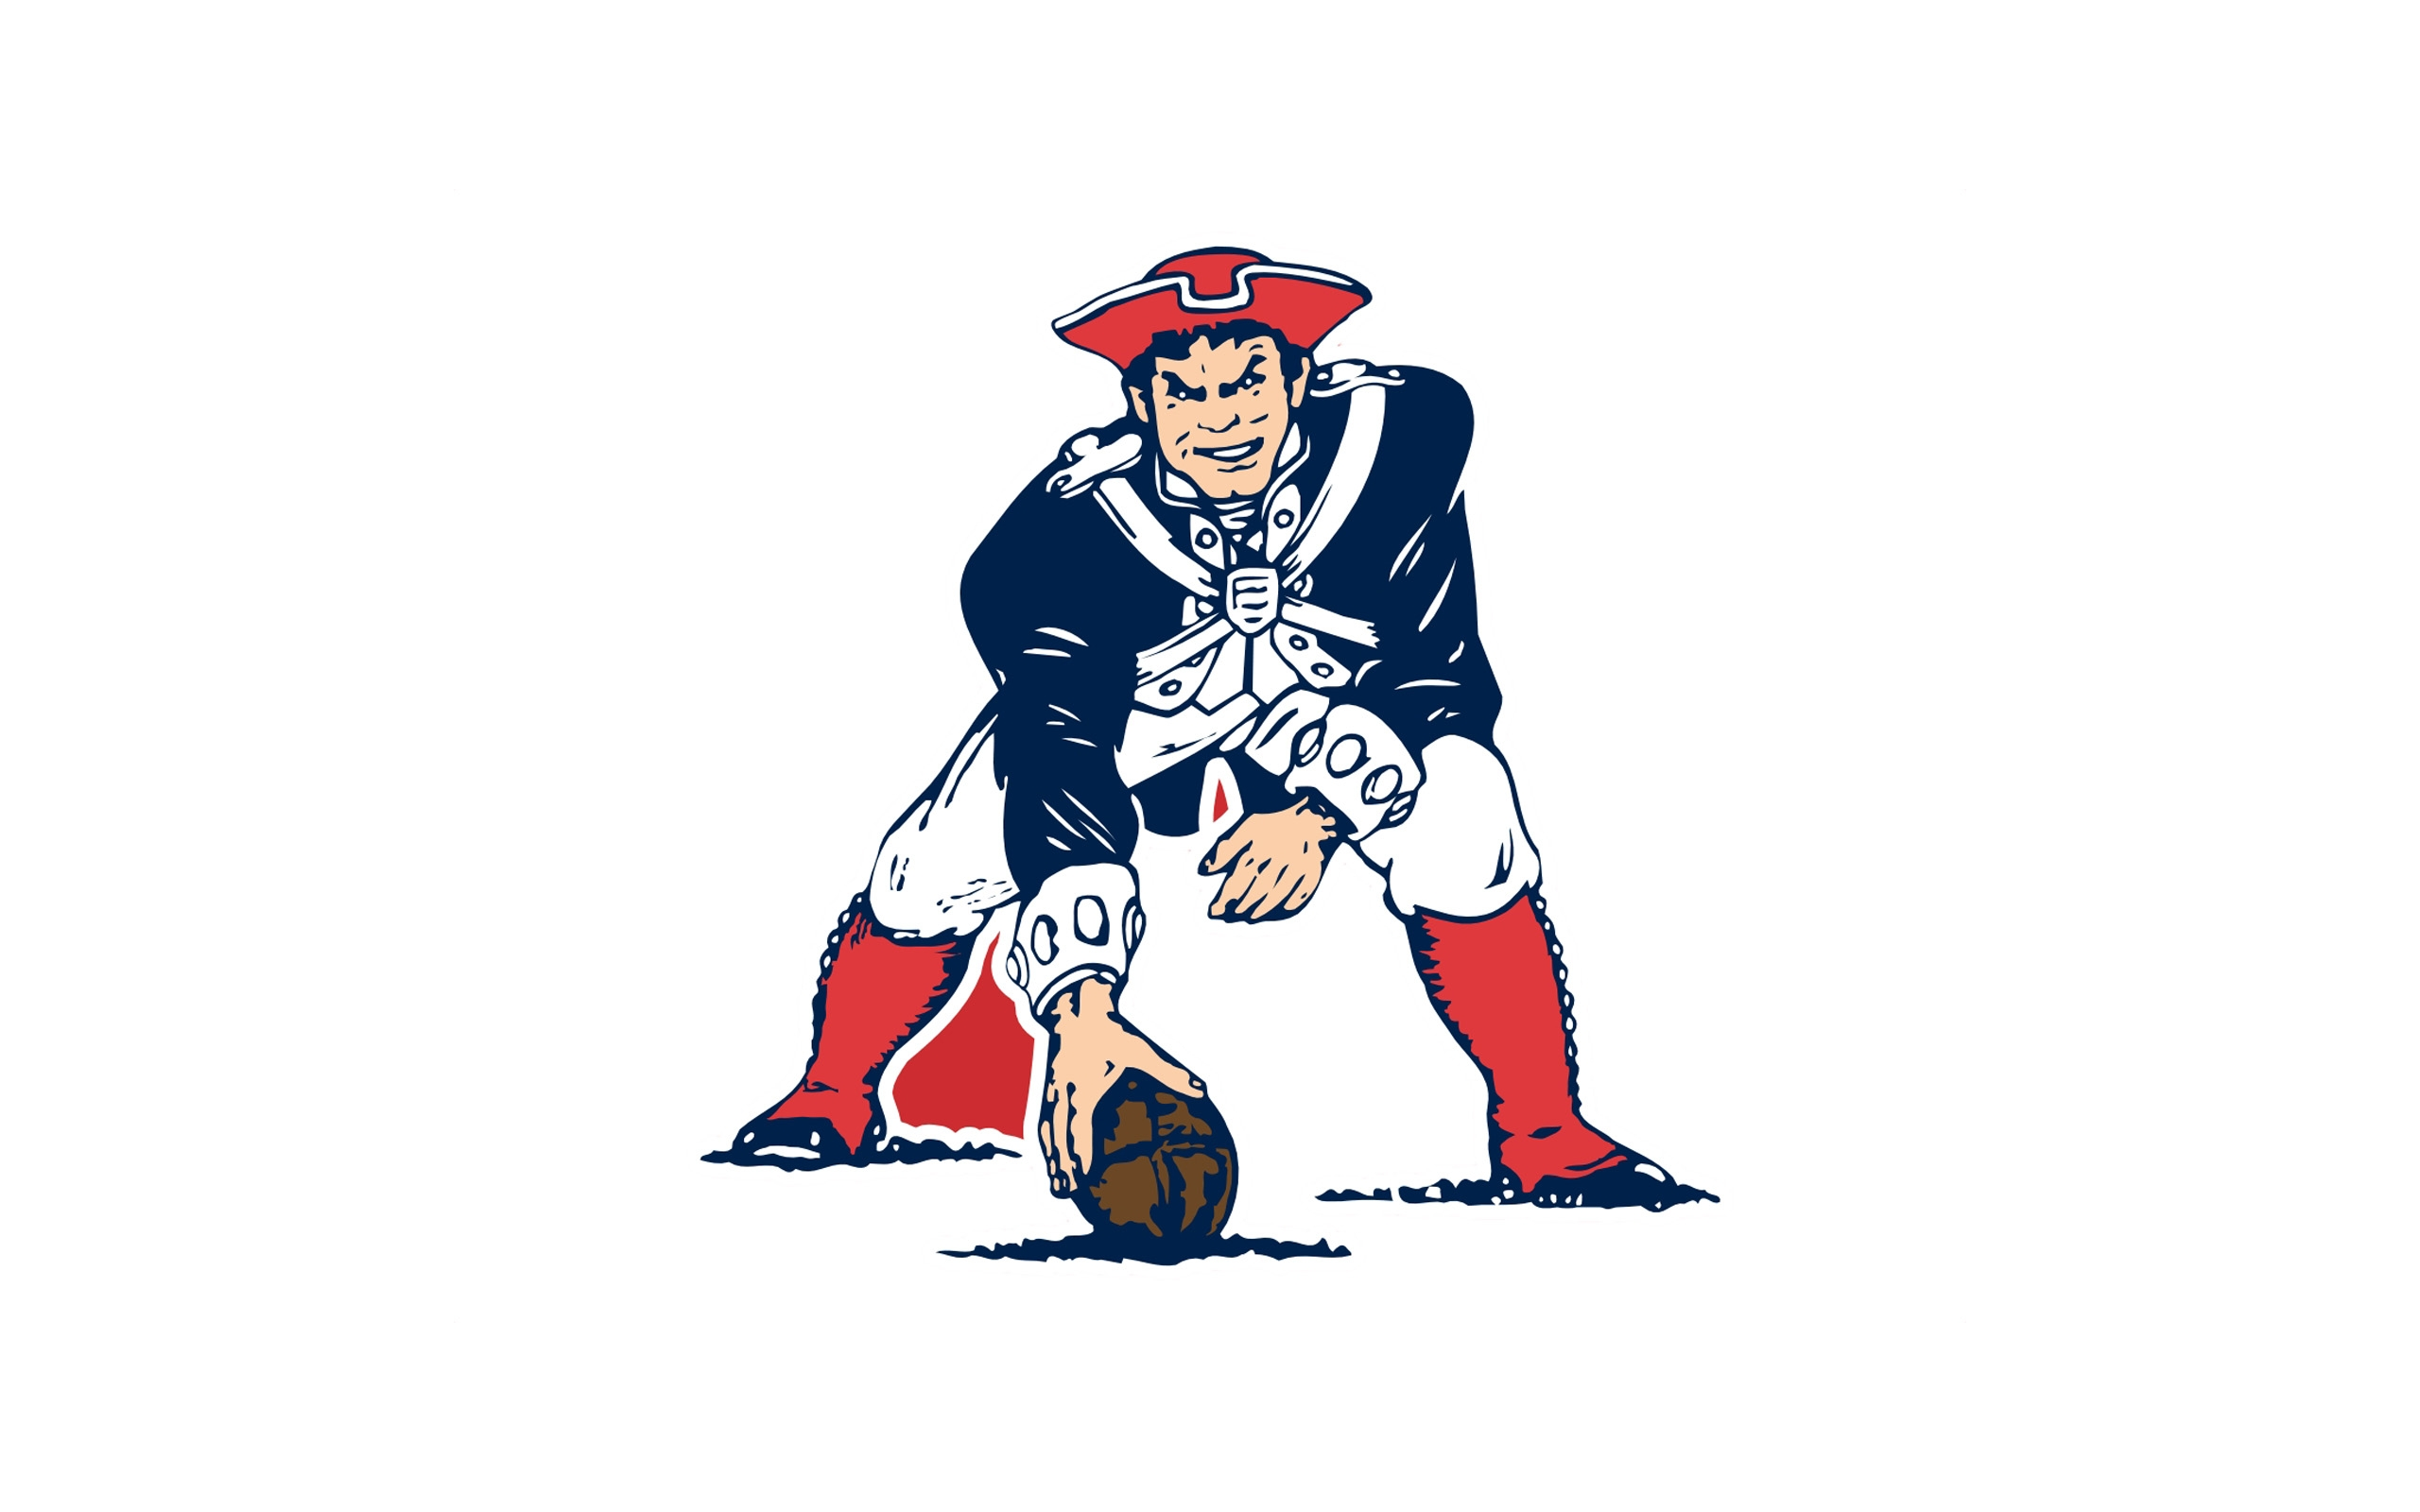 England Patriots background image New England Patriots wallpapers 2560x1600